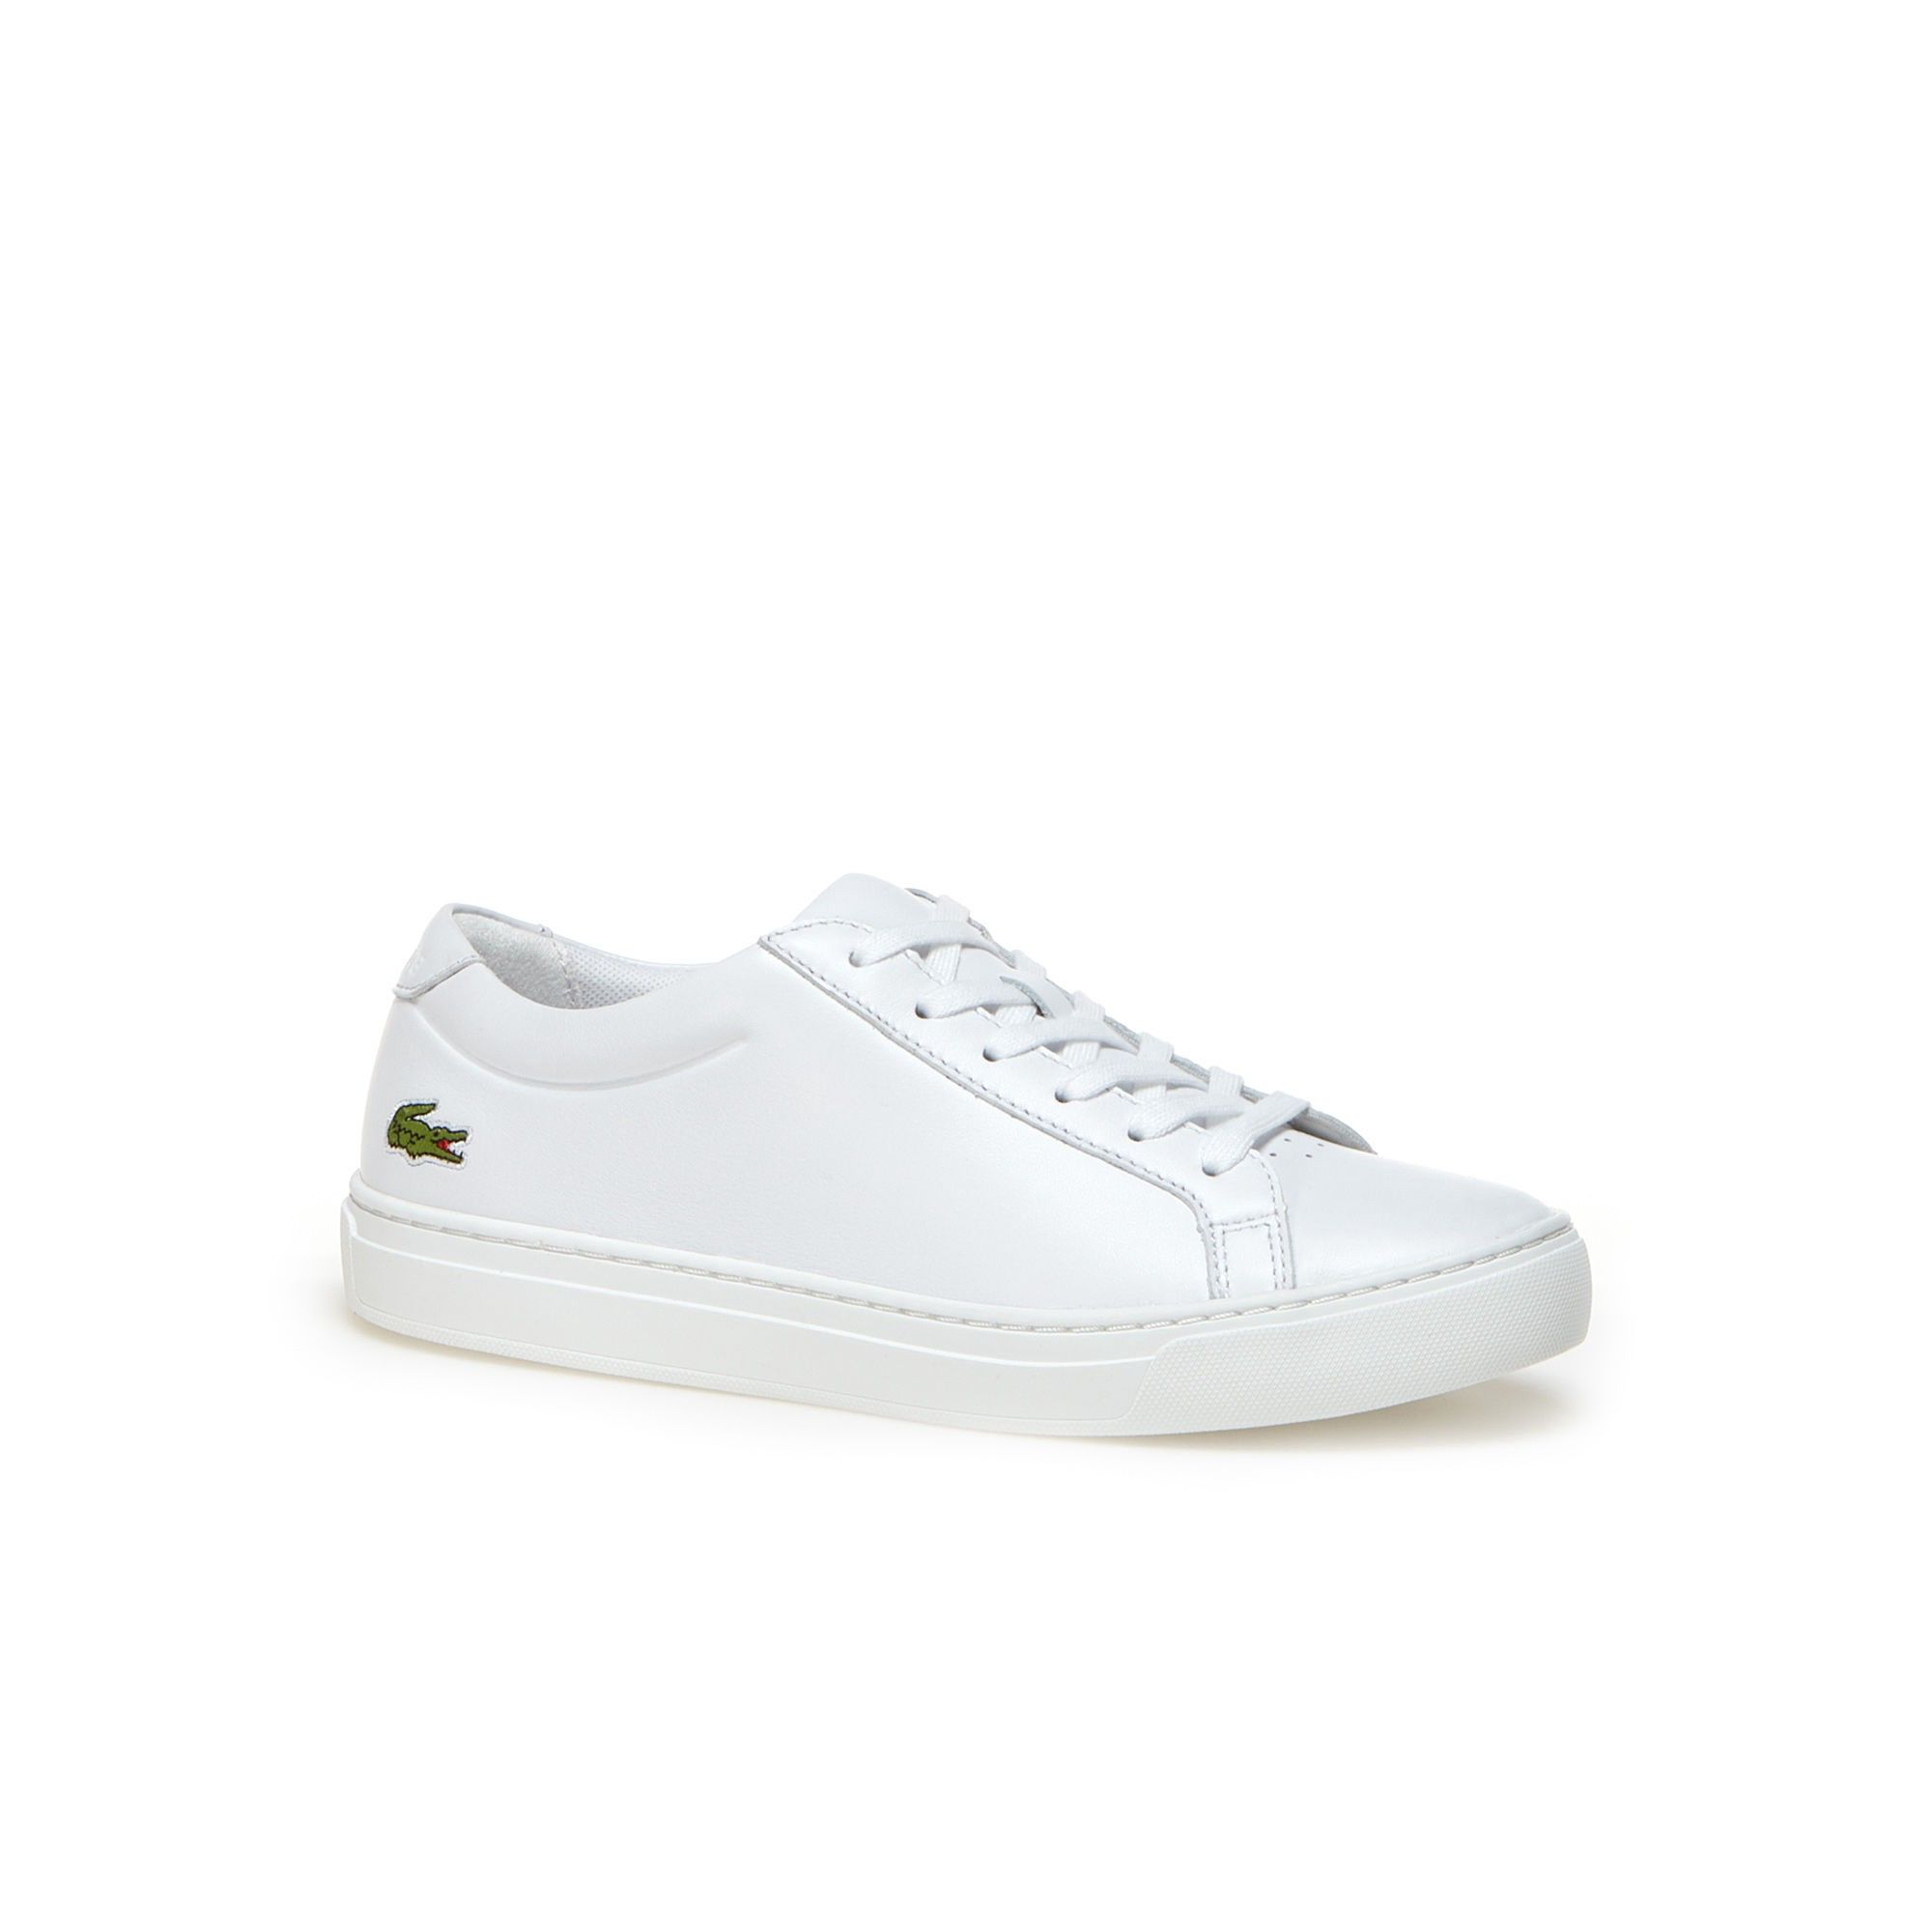 a5c21ce28d40 LACOSTE Women s L.12.12 Nappa Leather Sneakers - white.  lacoste  shoes  all